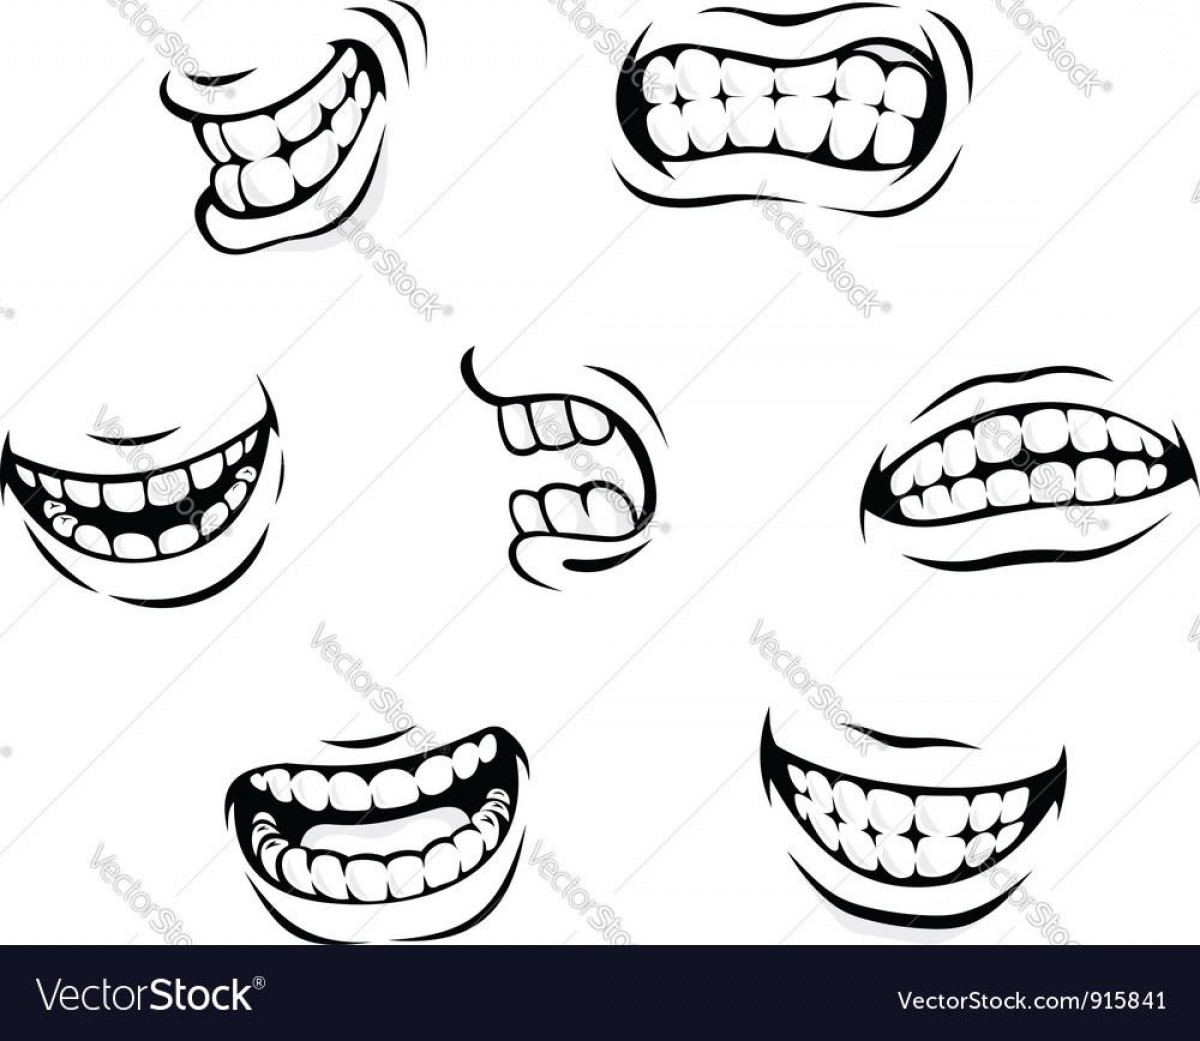 Angry teeth clipart clip art freeuse library Best Smiling And Angry Cartoon Teeth Vector Library   SOIDERGI clip art freeuse library